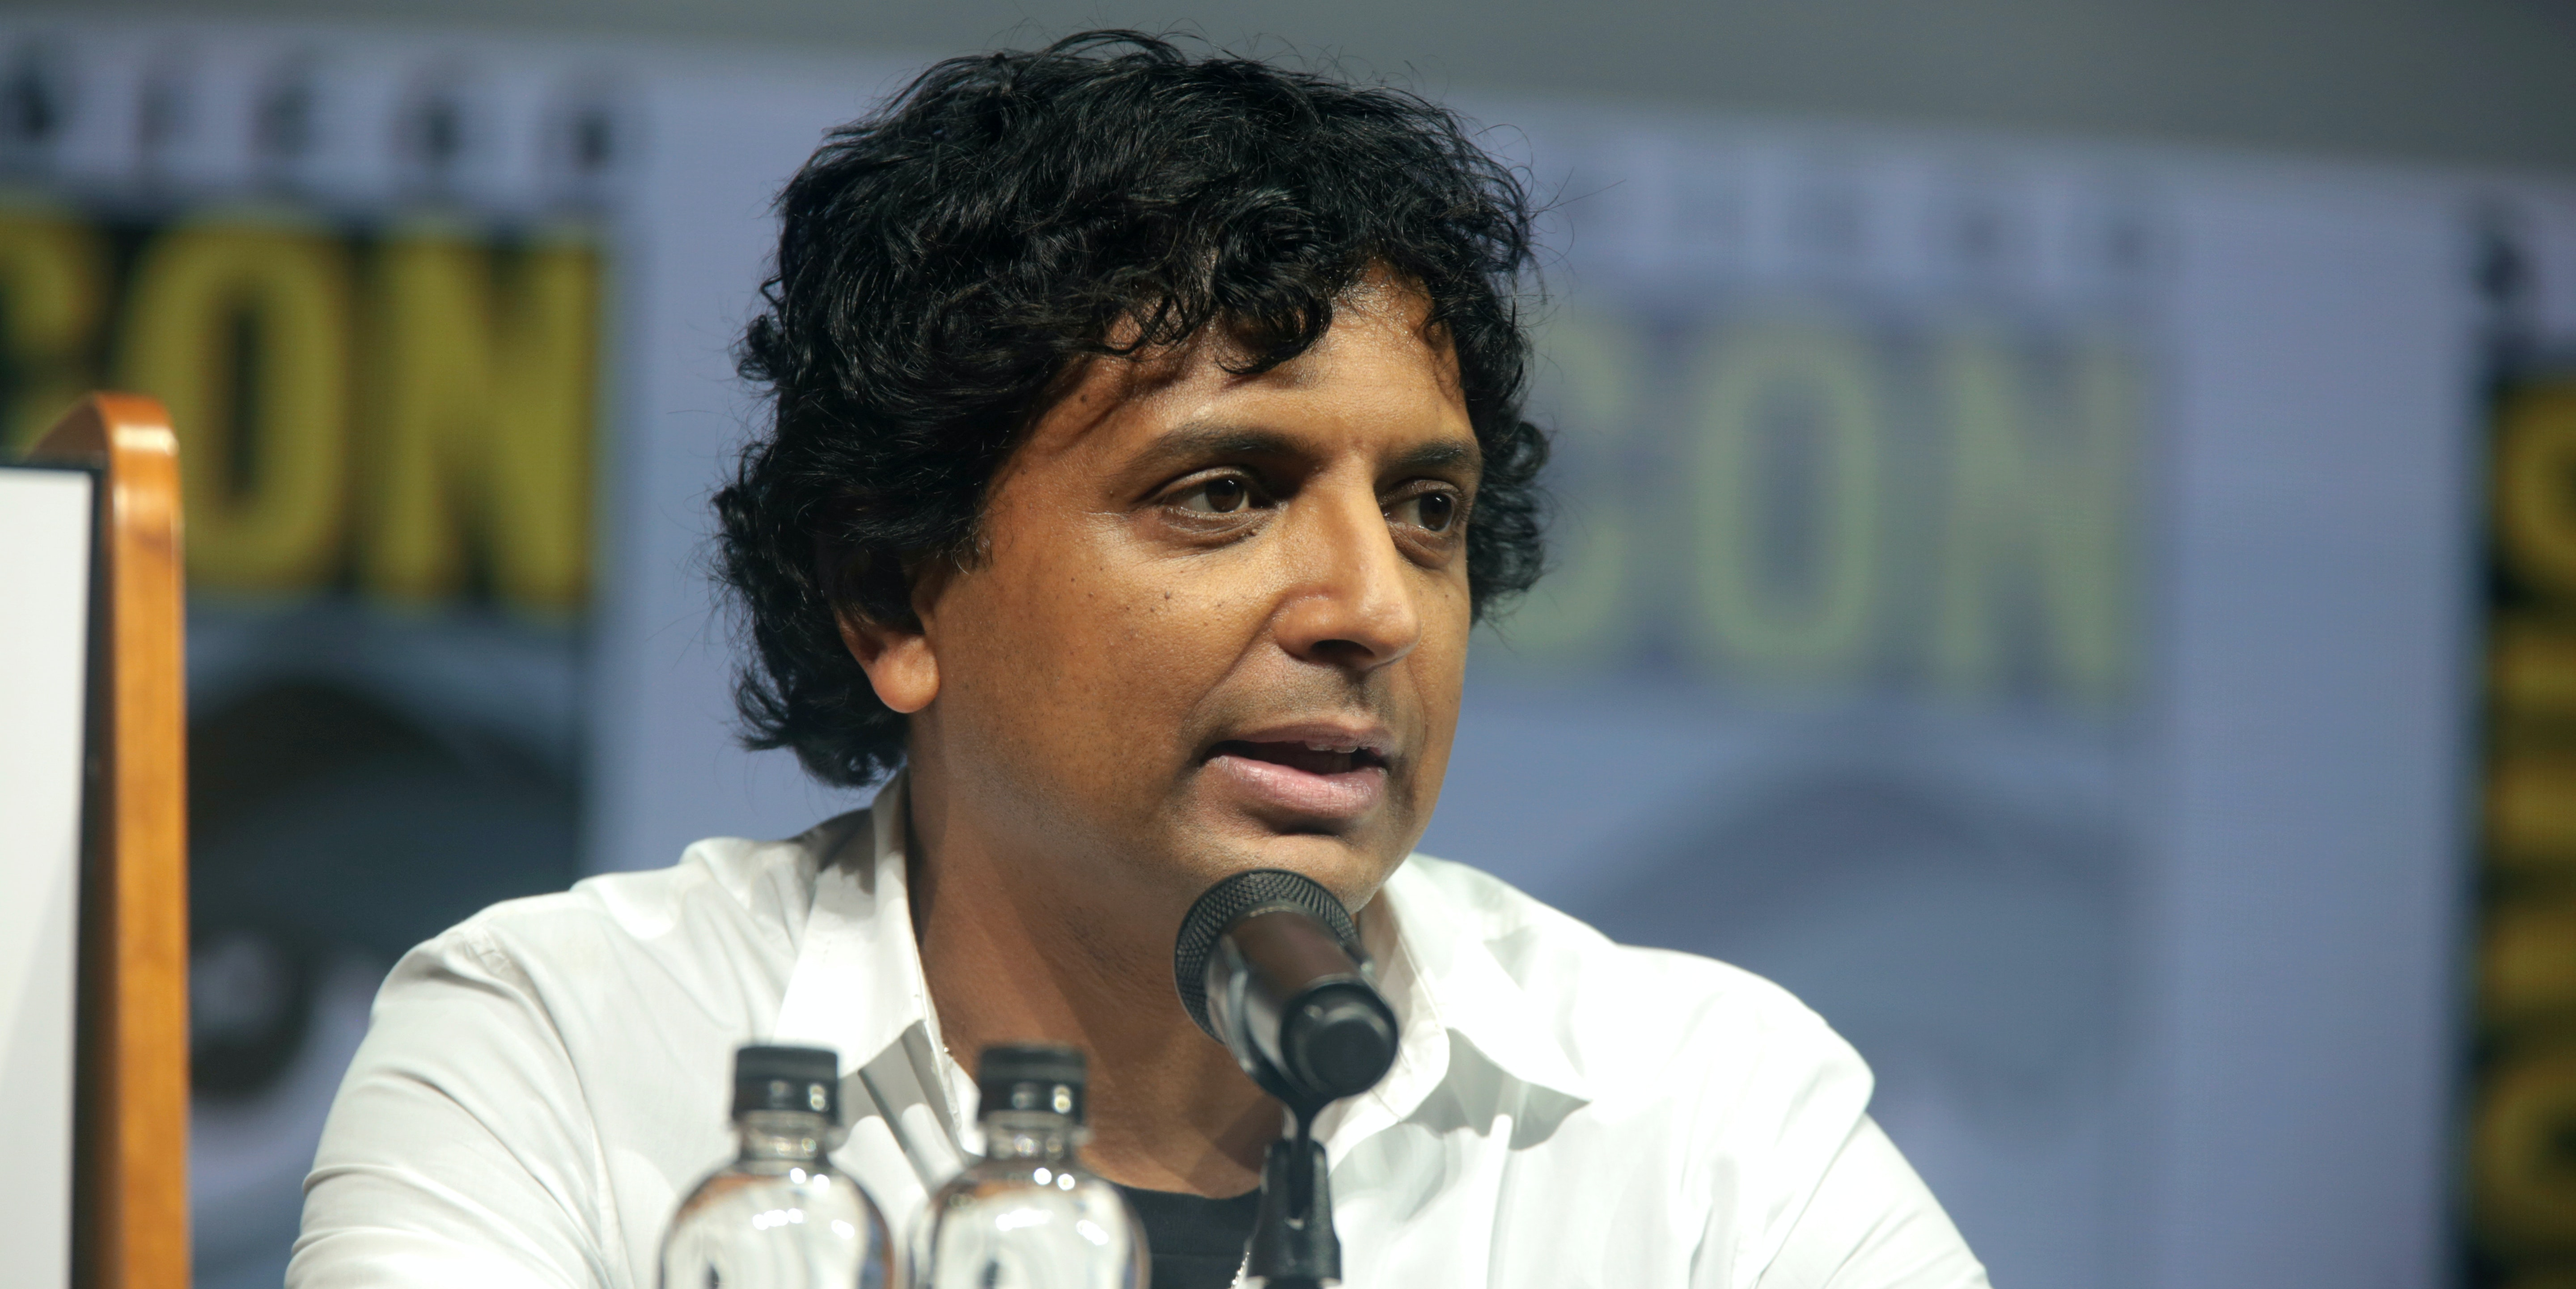 M. Night Shyamalan's Apple TV+ Show: Release Date, Trailer, Plot, and Cast